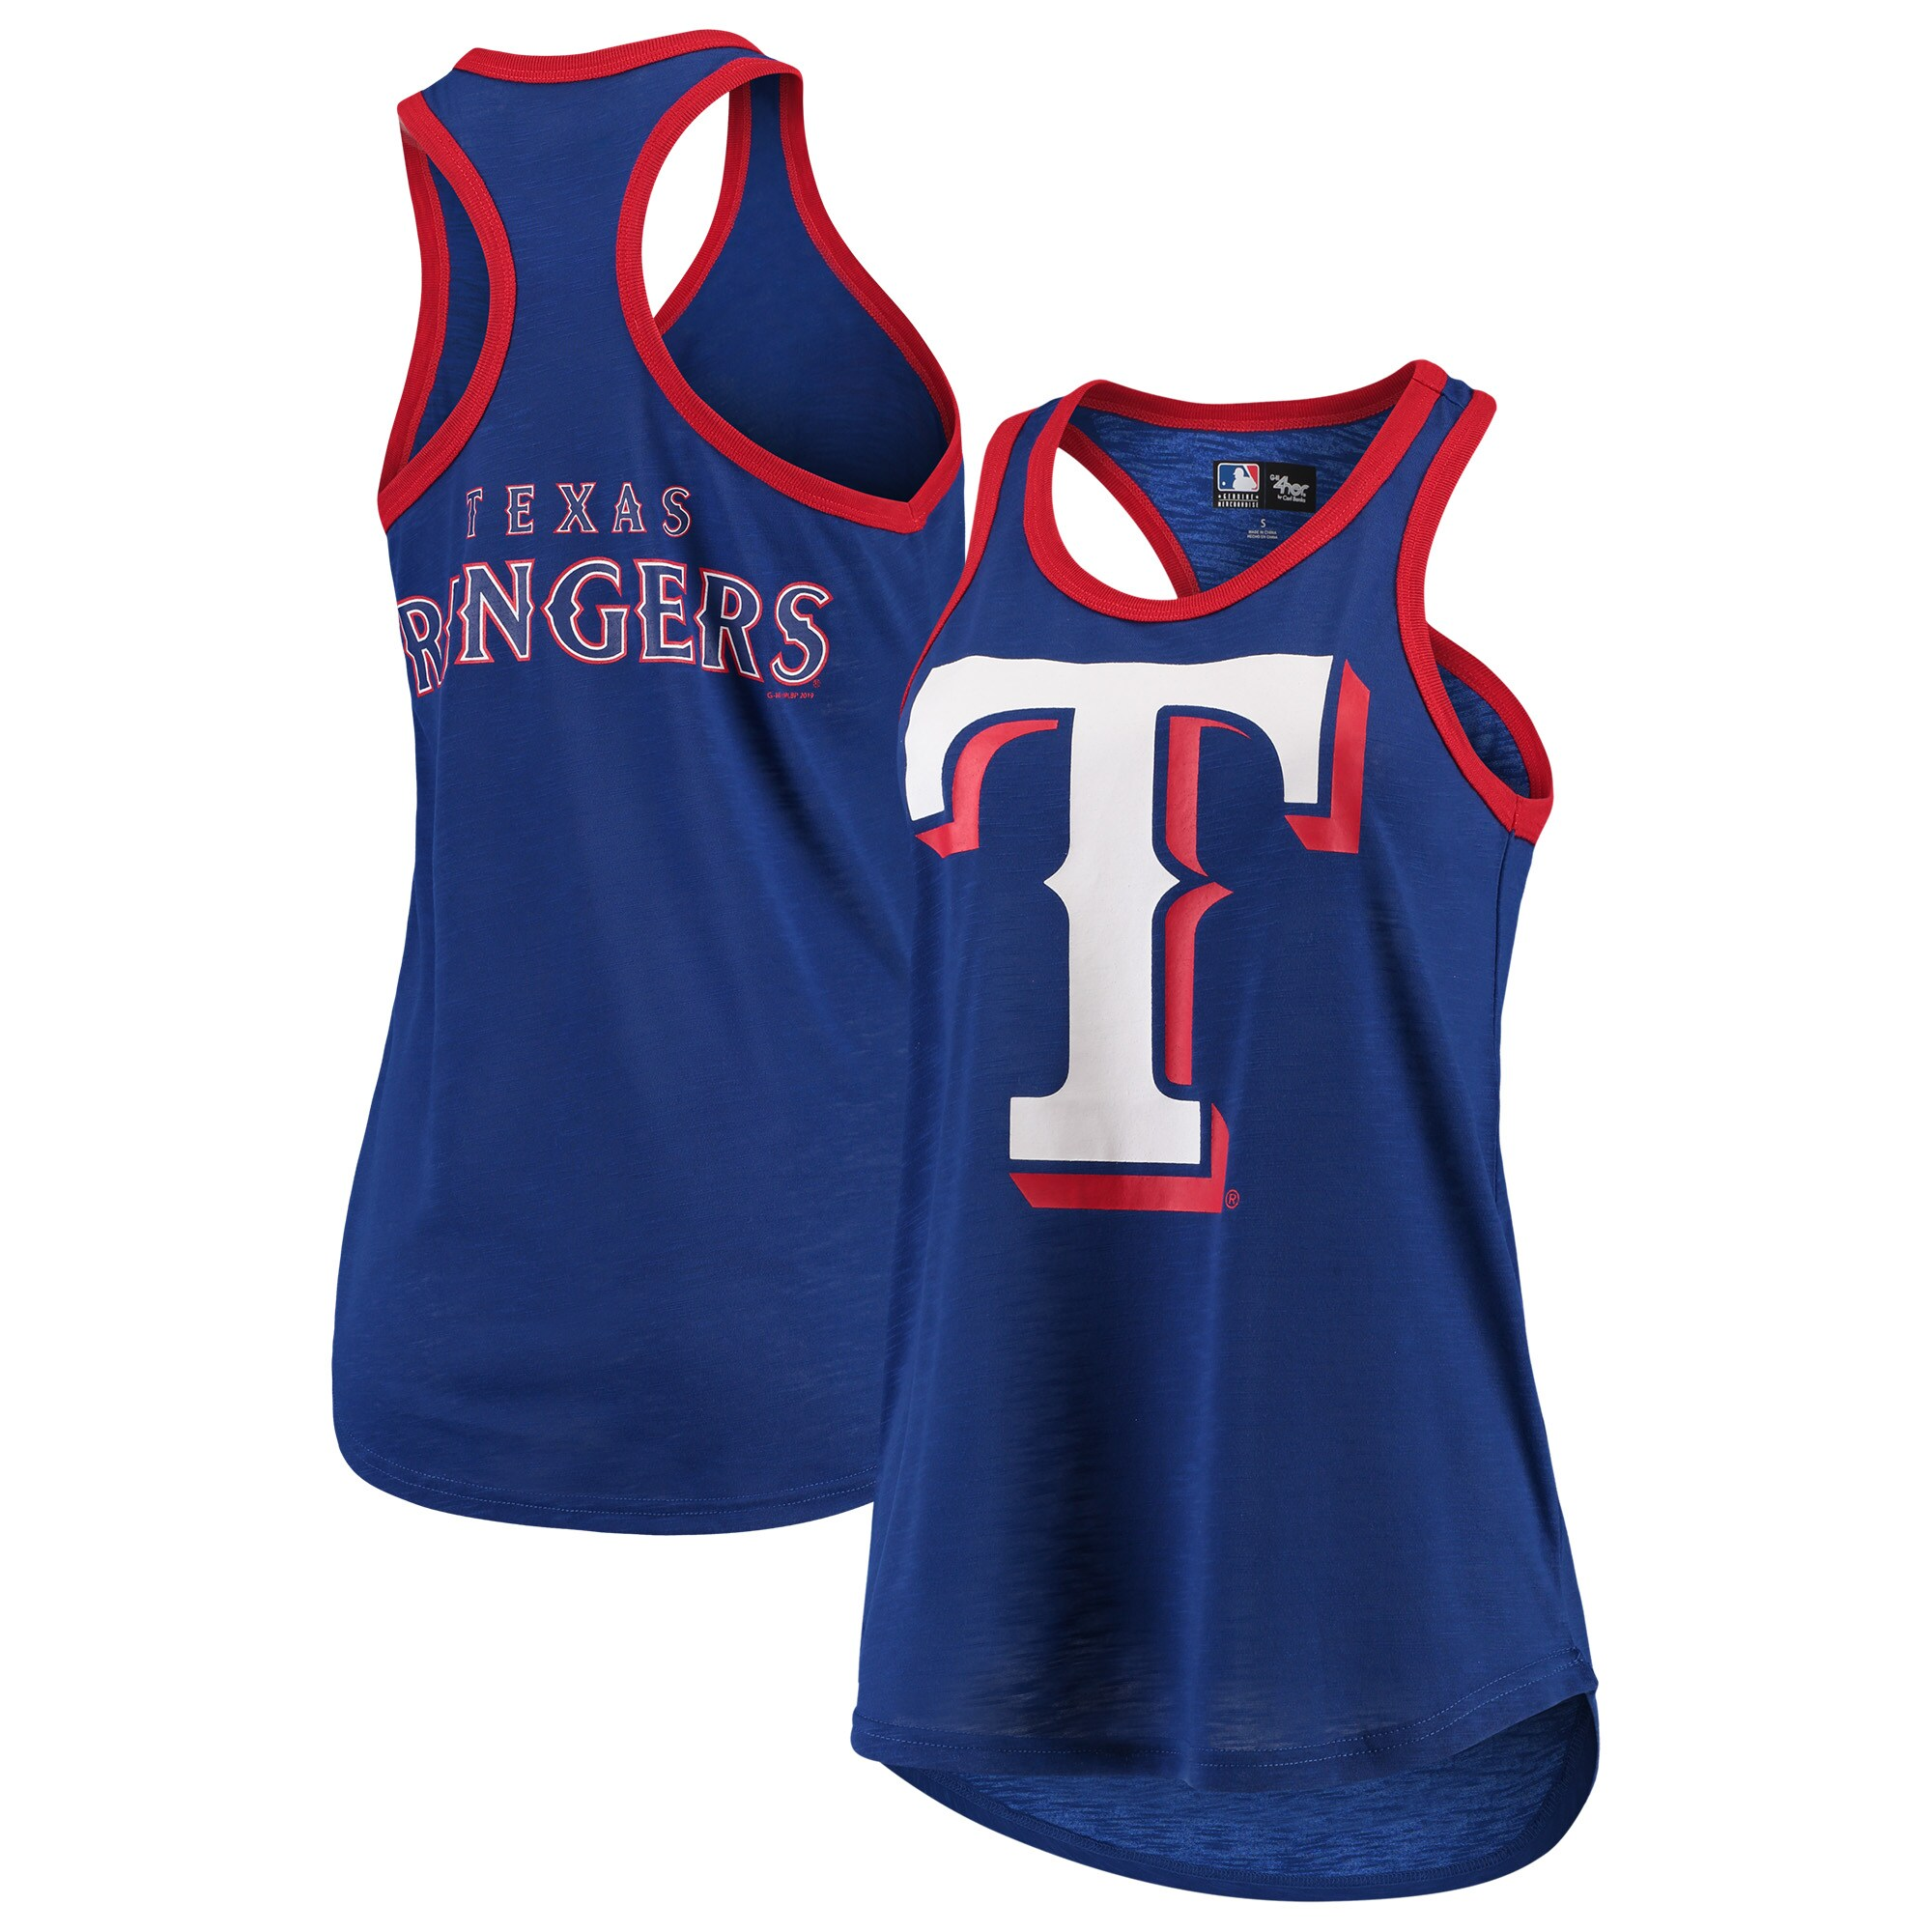 Texas Rangers G-III 4Her by Carl Banks Women's Team Color Tater Tank Top - Royal